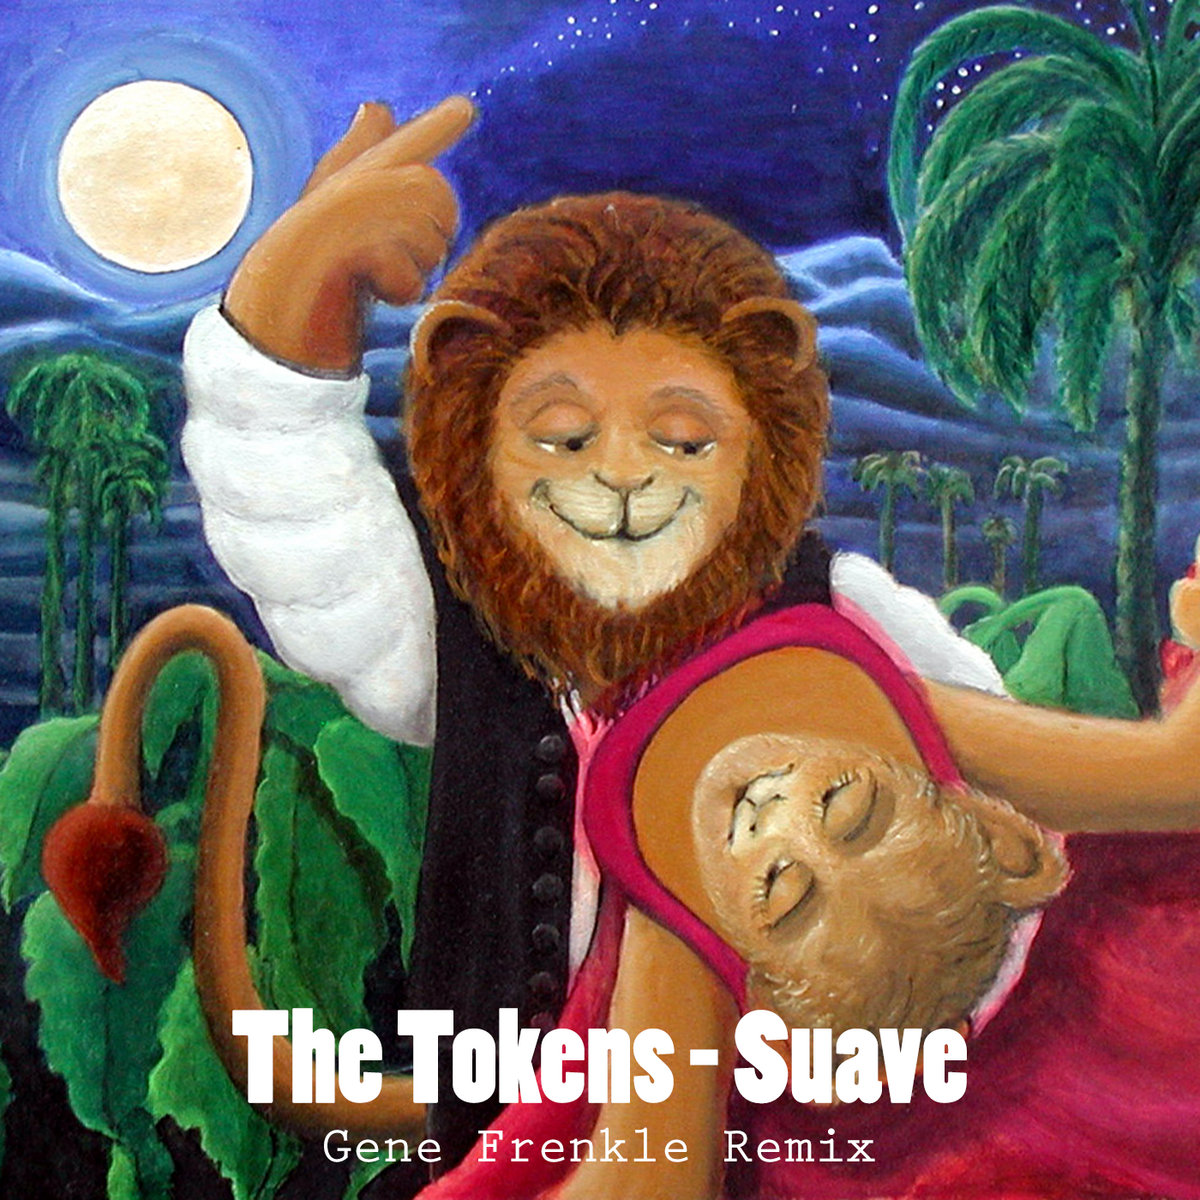 Suave (Gene Frenkle Remix) by The Tokens